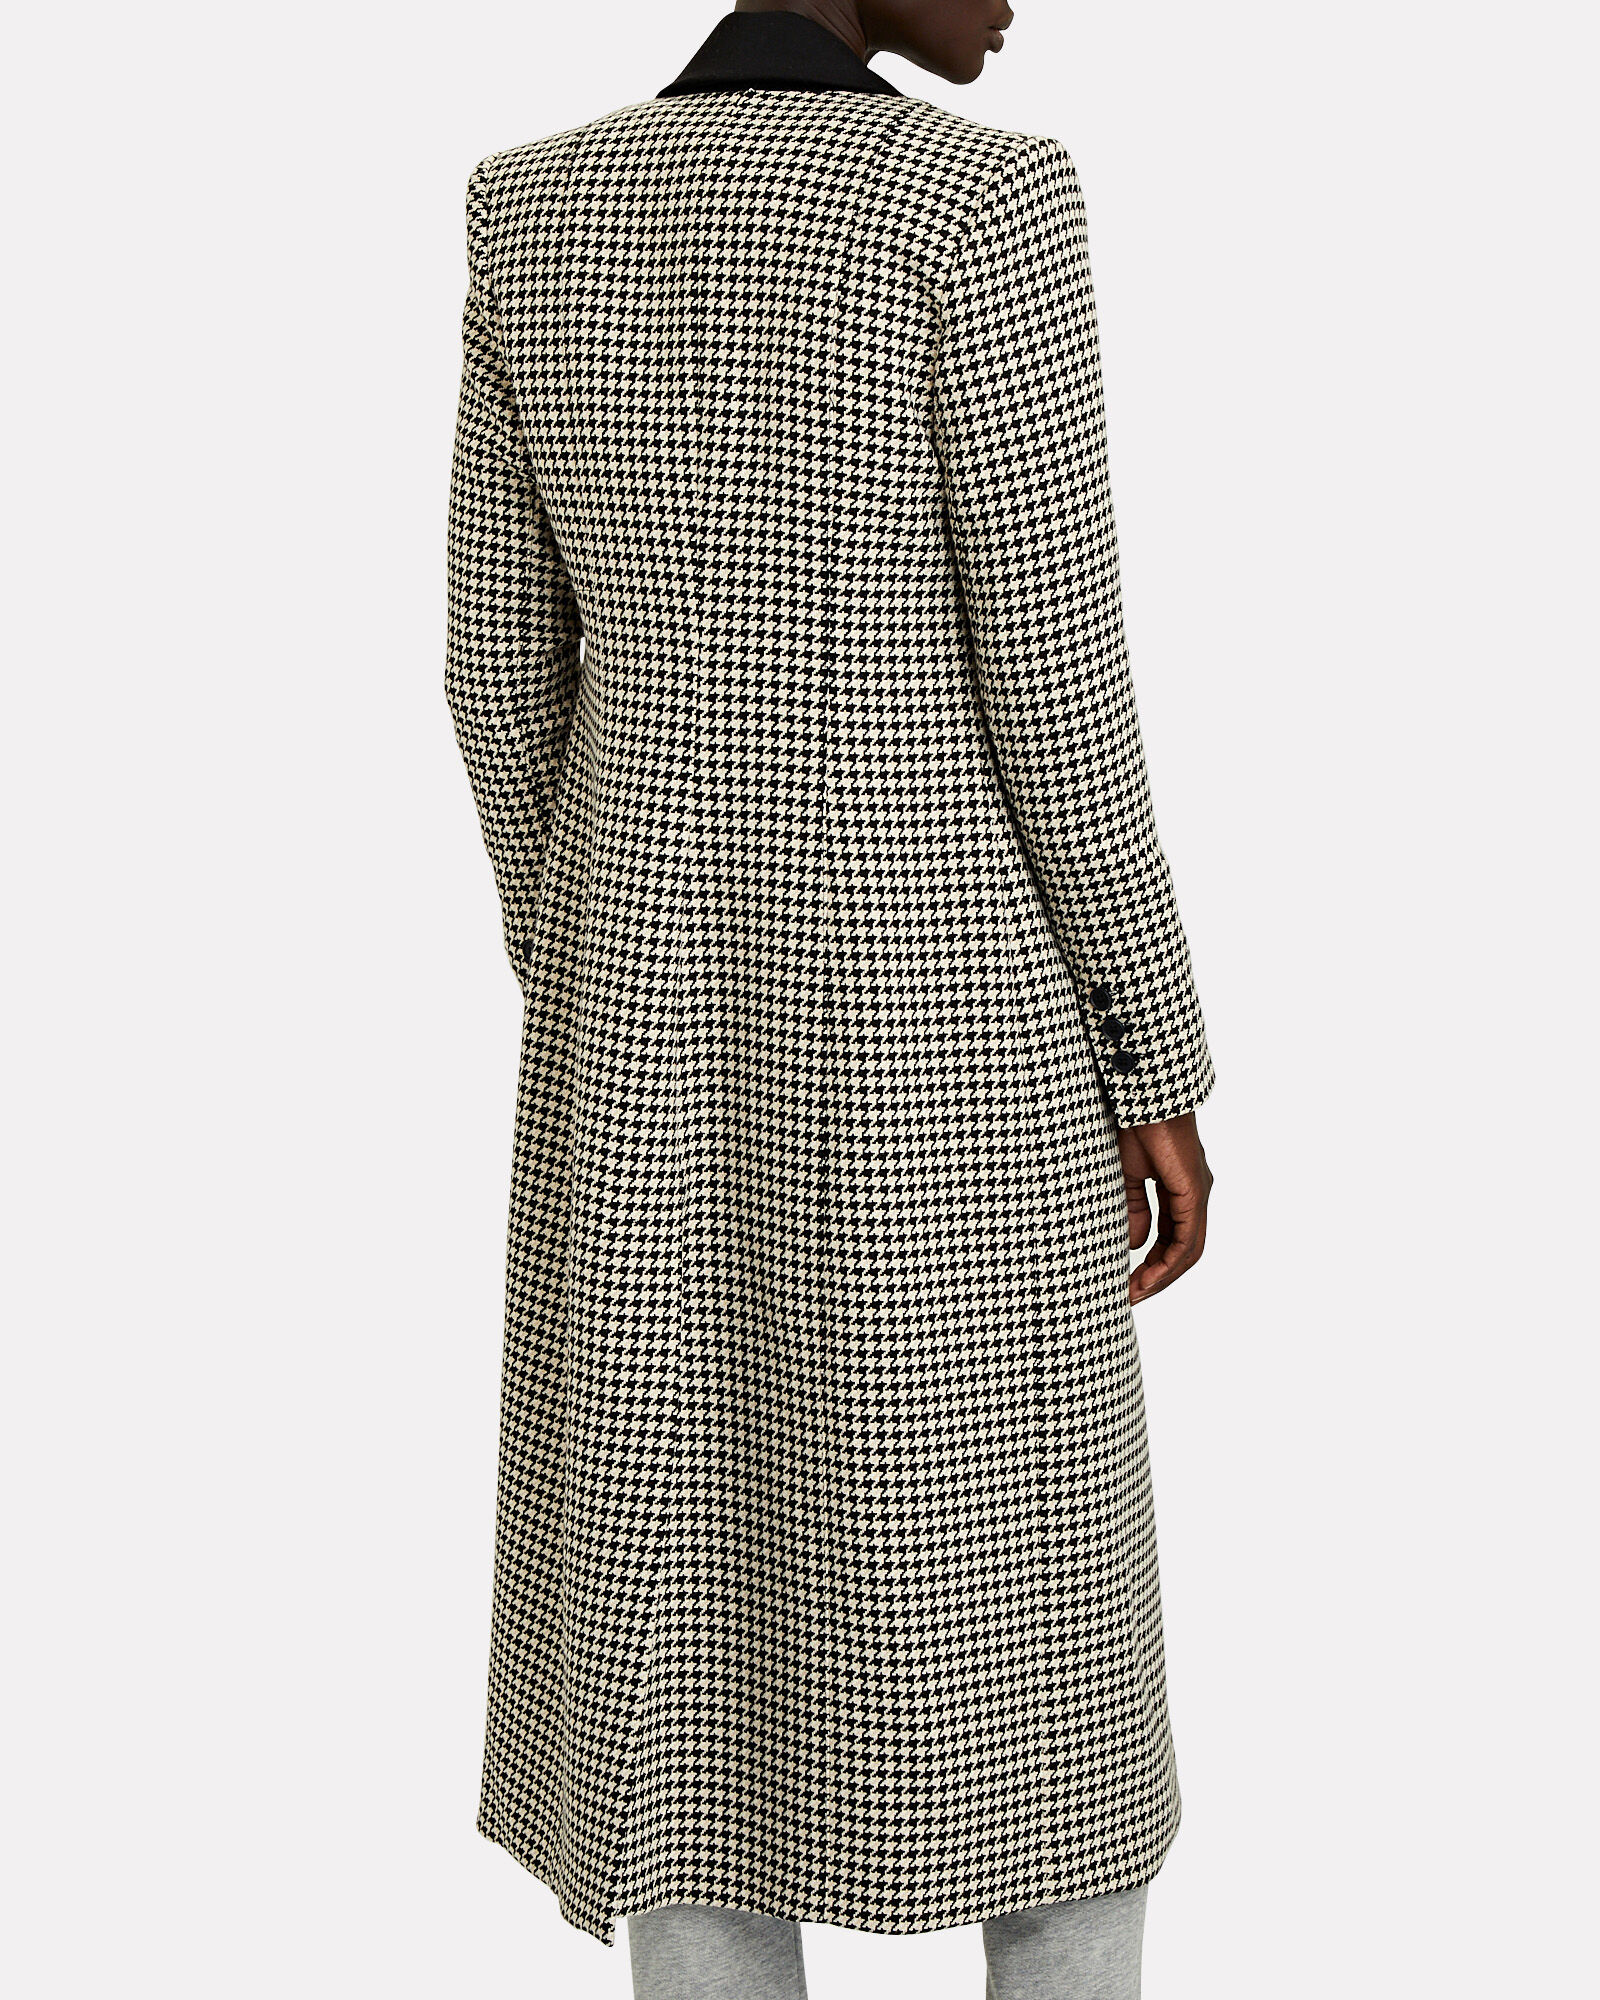 Brando Houndstooth Coat, BLACK/BEIGE, hi-res